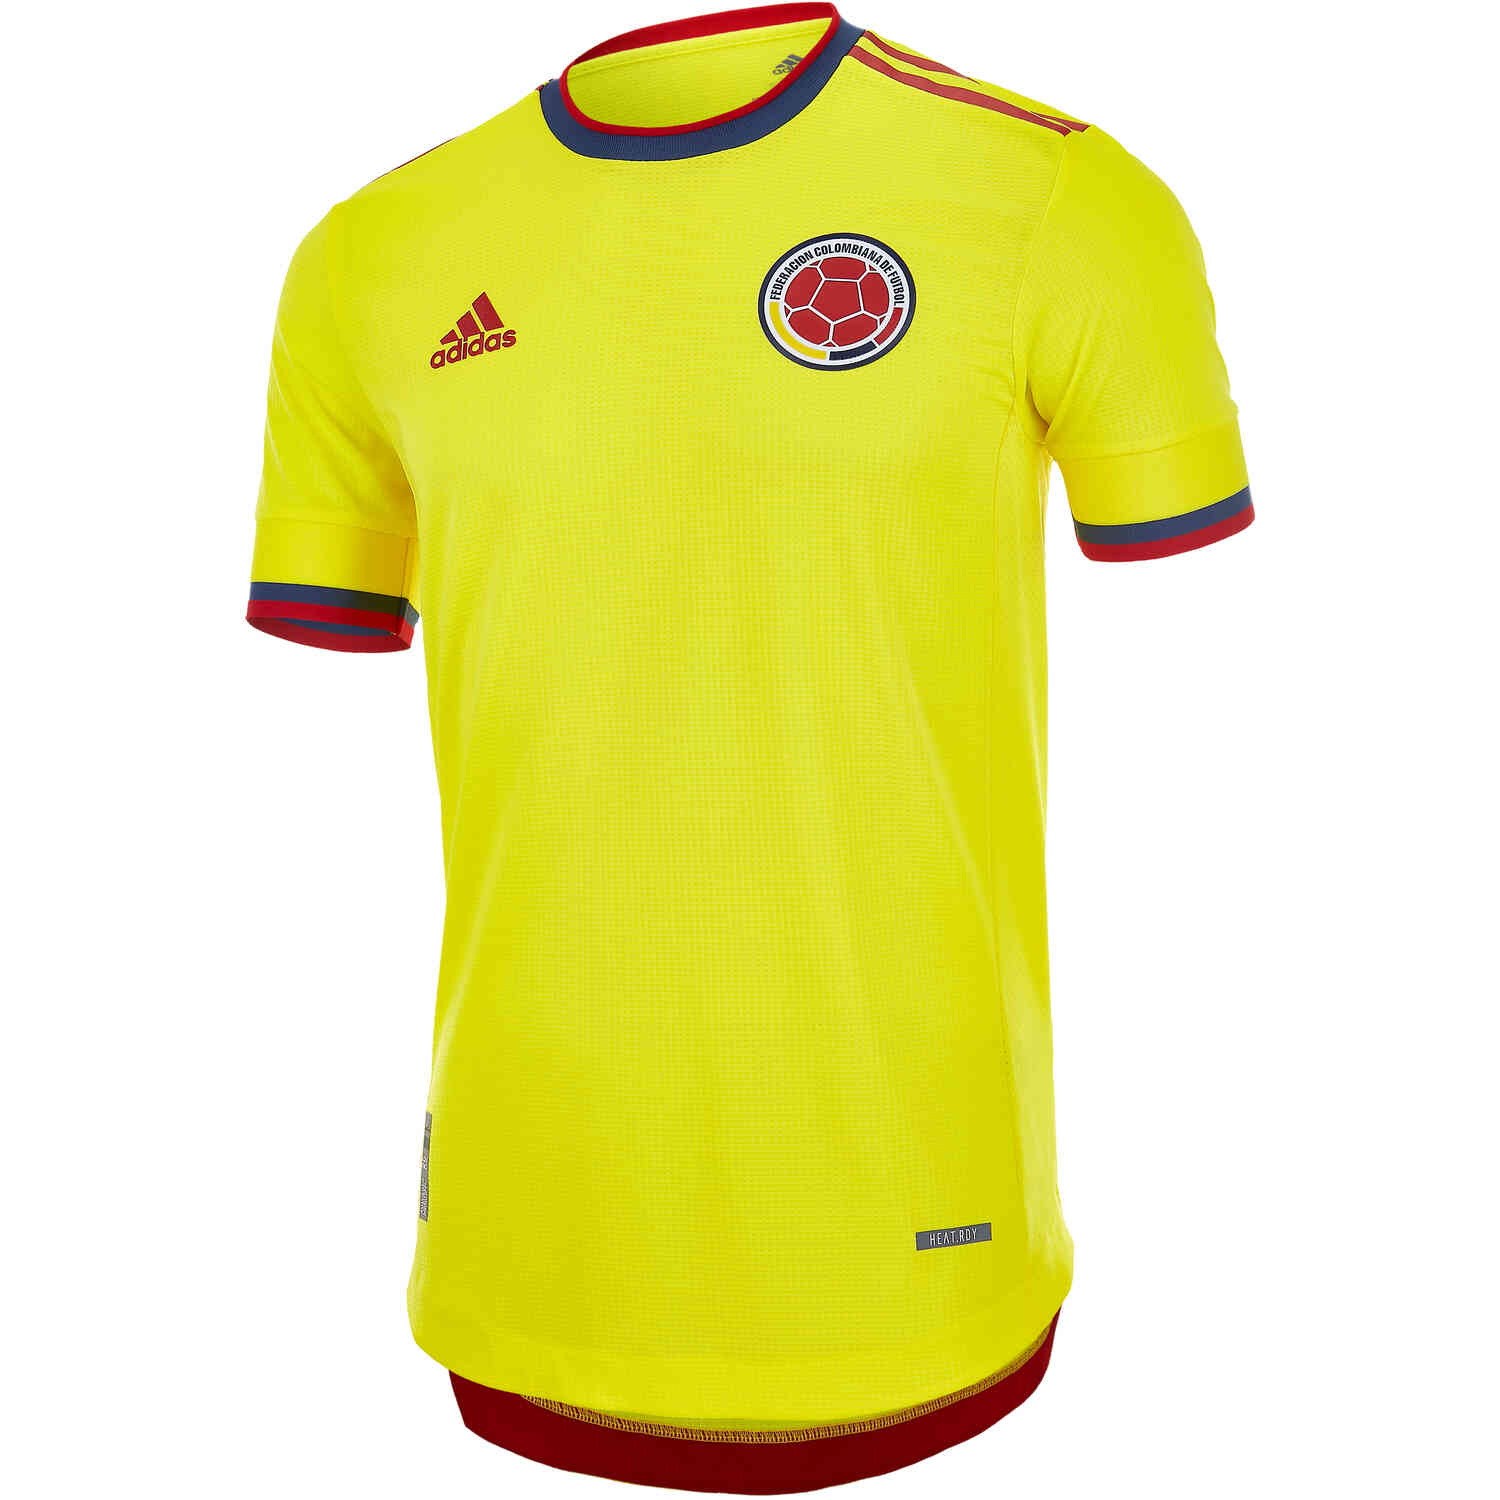 2021 adidas Colombia Home Authentic Jersey - SoccerPro